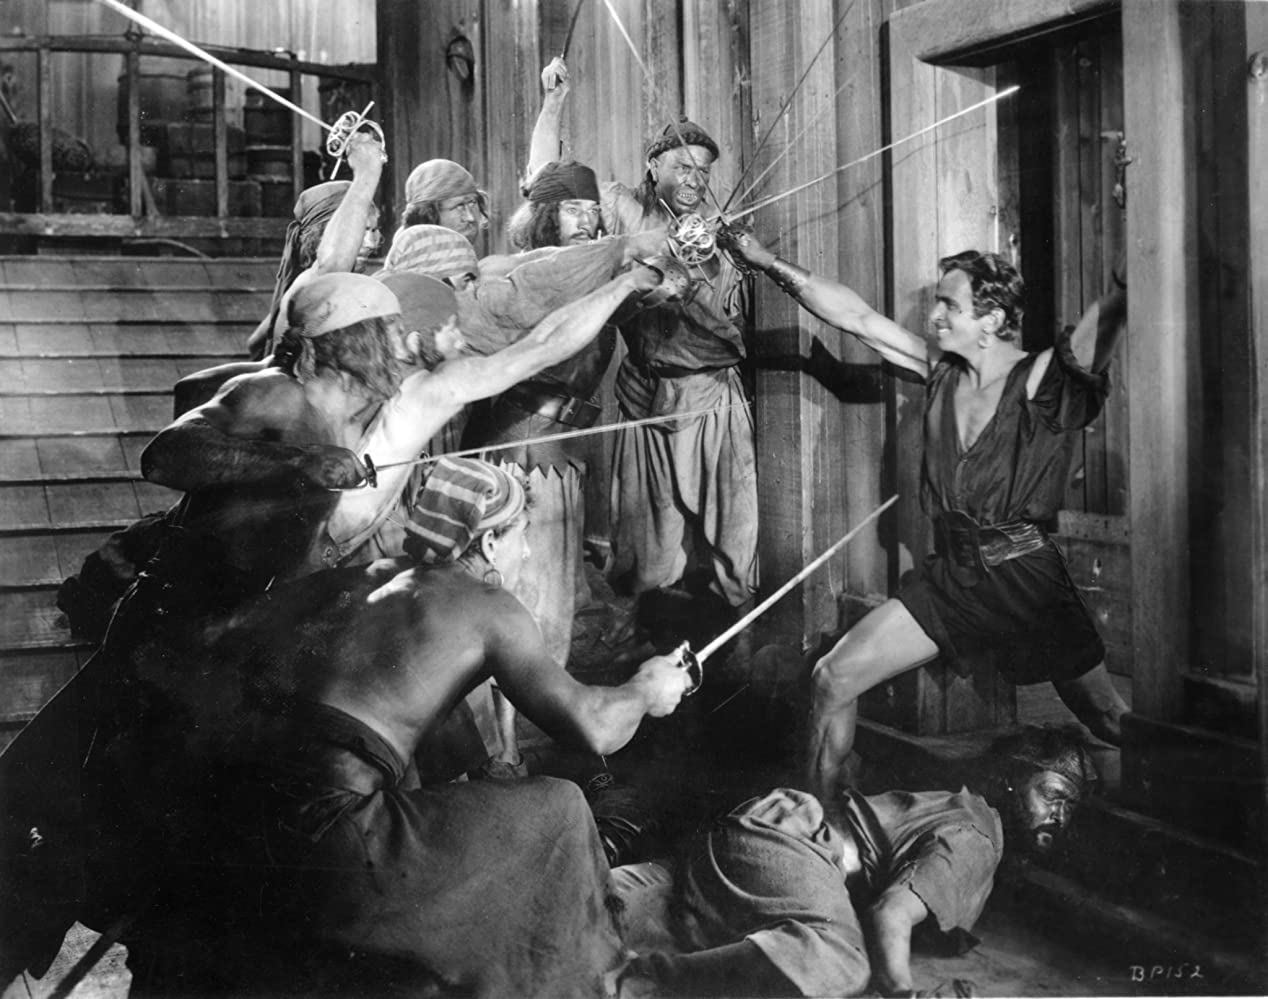 Douglas Fairbanks in The Black Pirate 1926